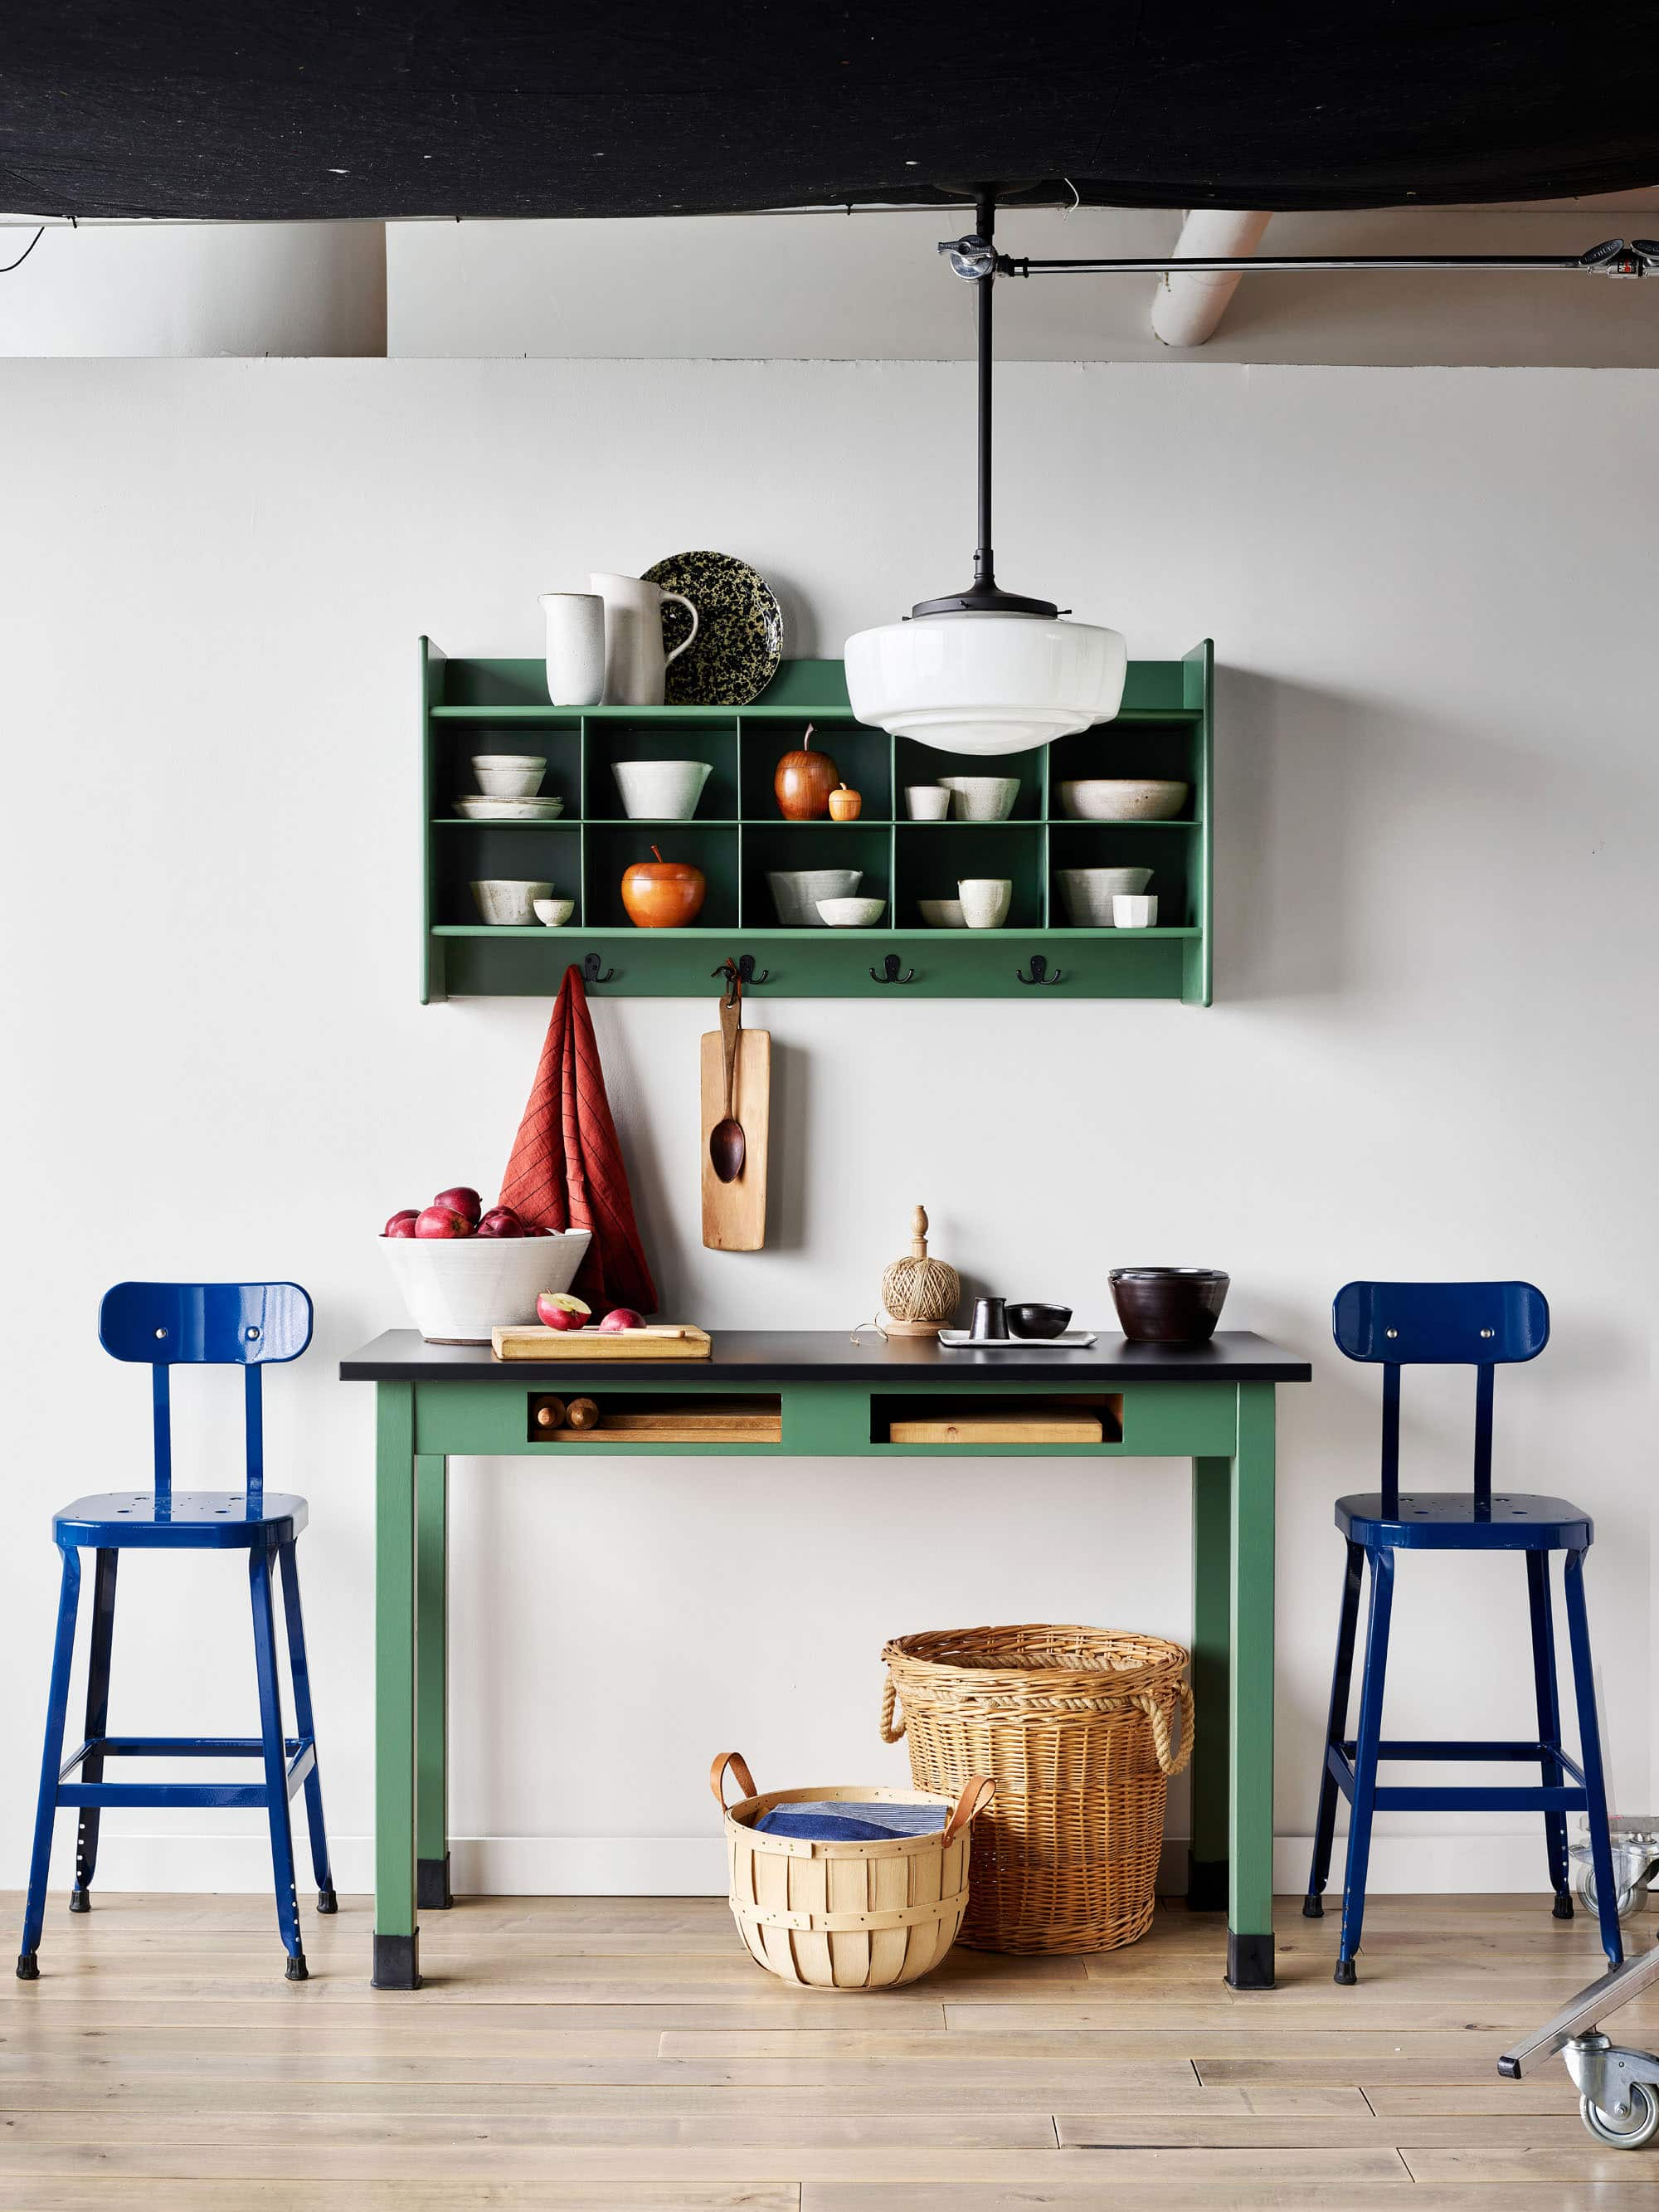 New Year's Resolutions: 5 Easy Ways To Improve Every Room In Your Home - Bobby Berk